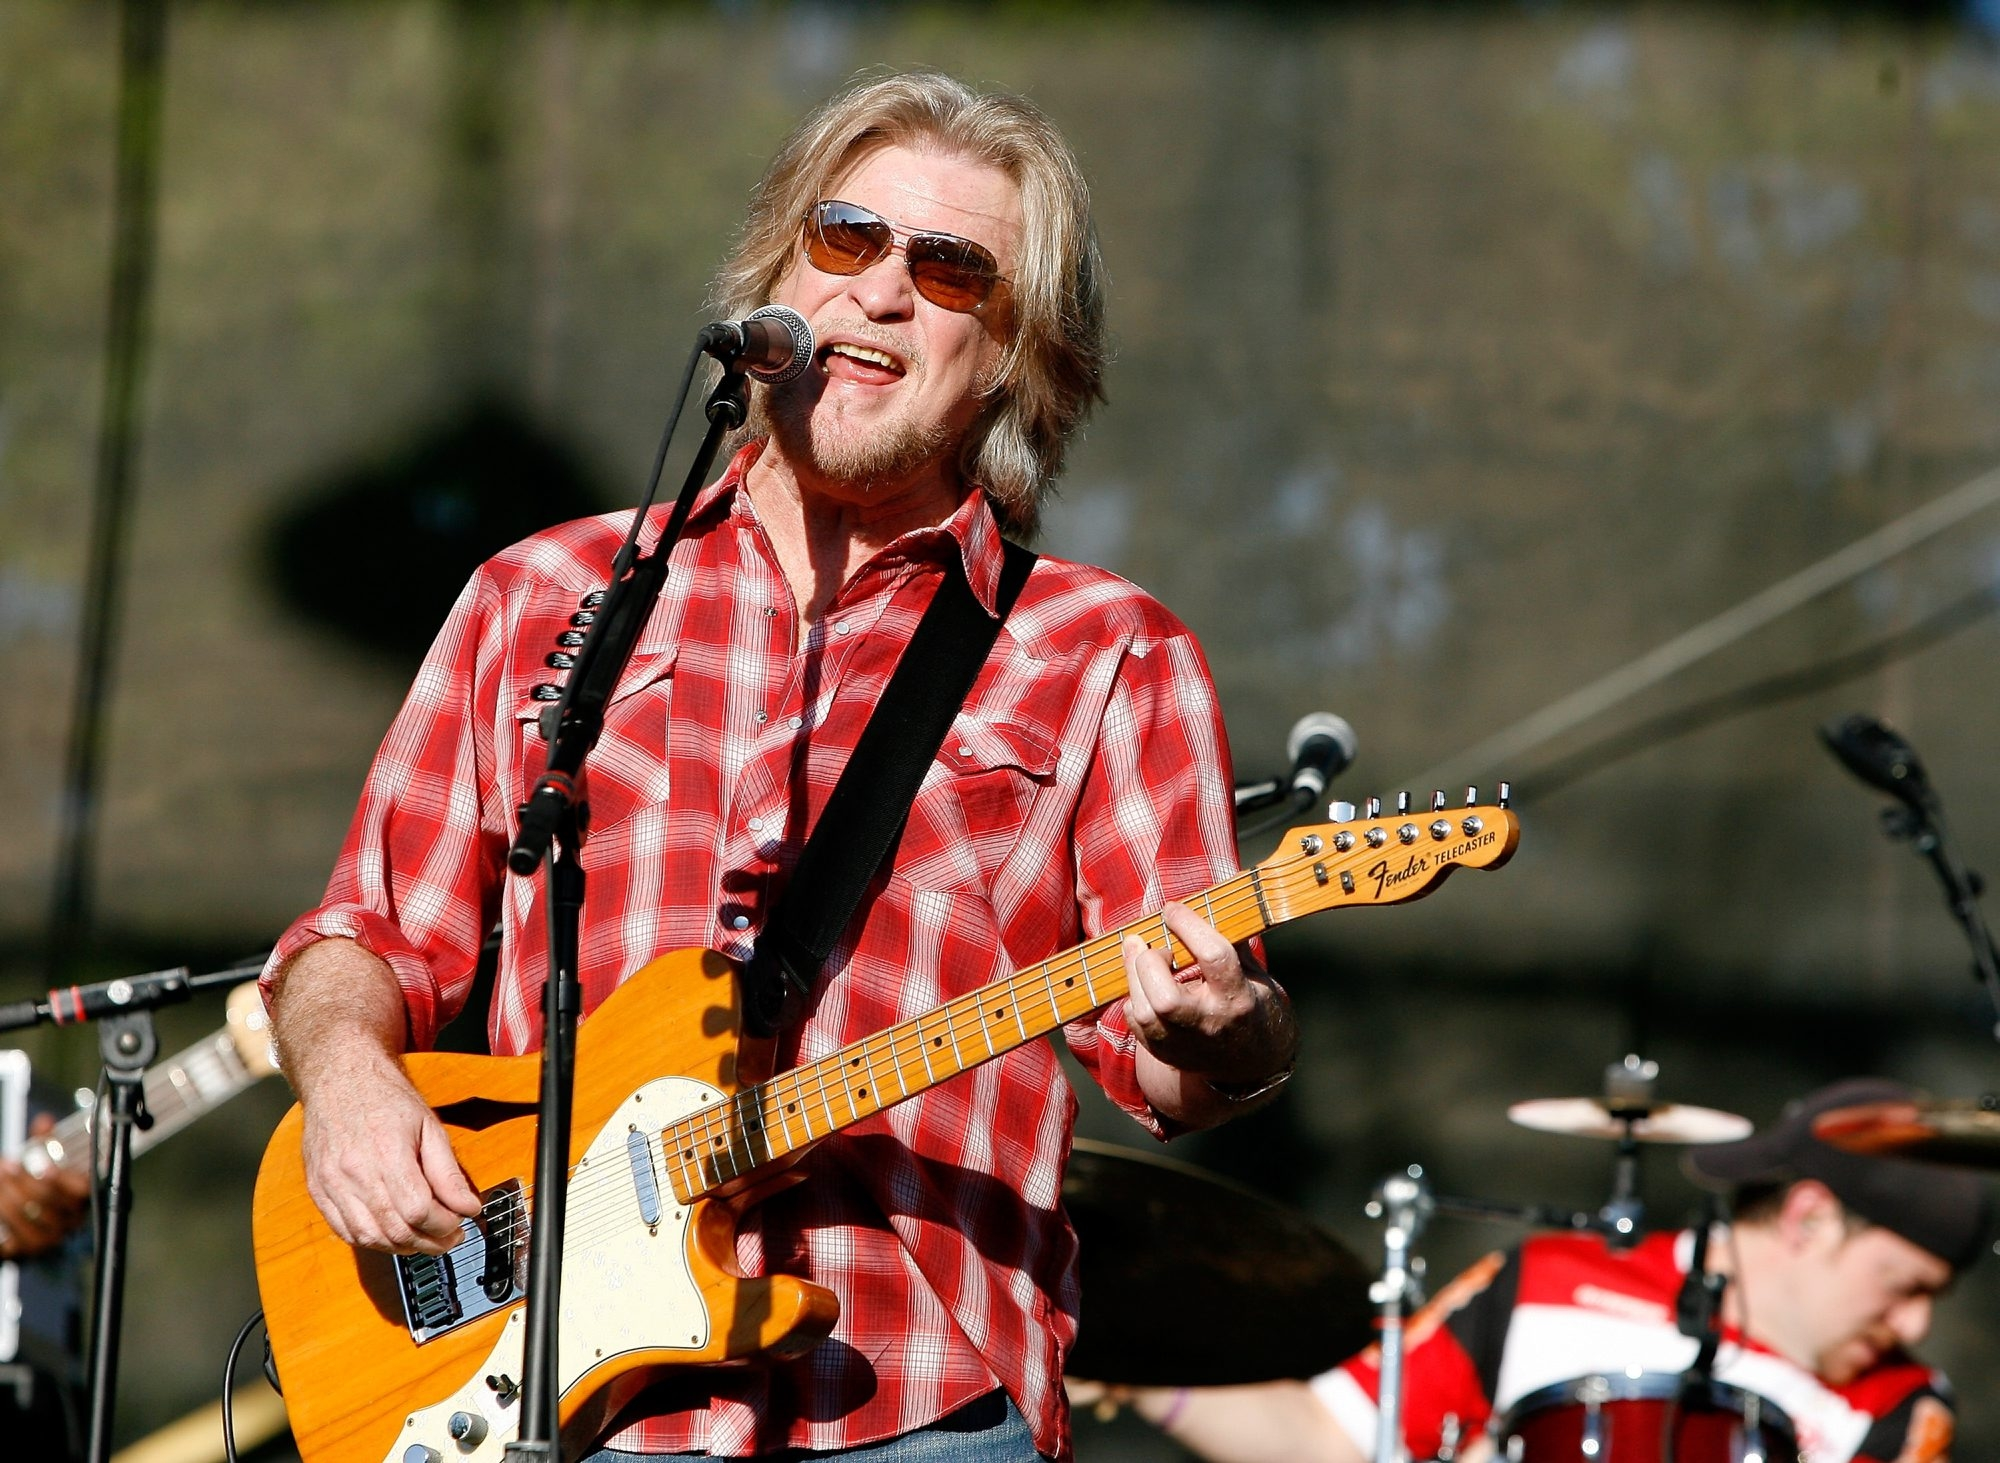 Daryl Hall plays twice this weekend with John Rzeznik.